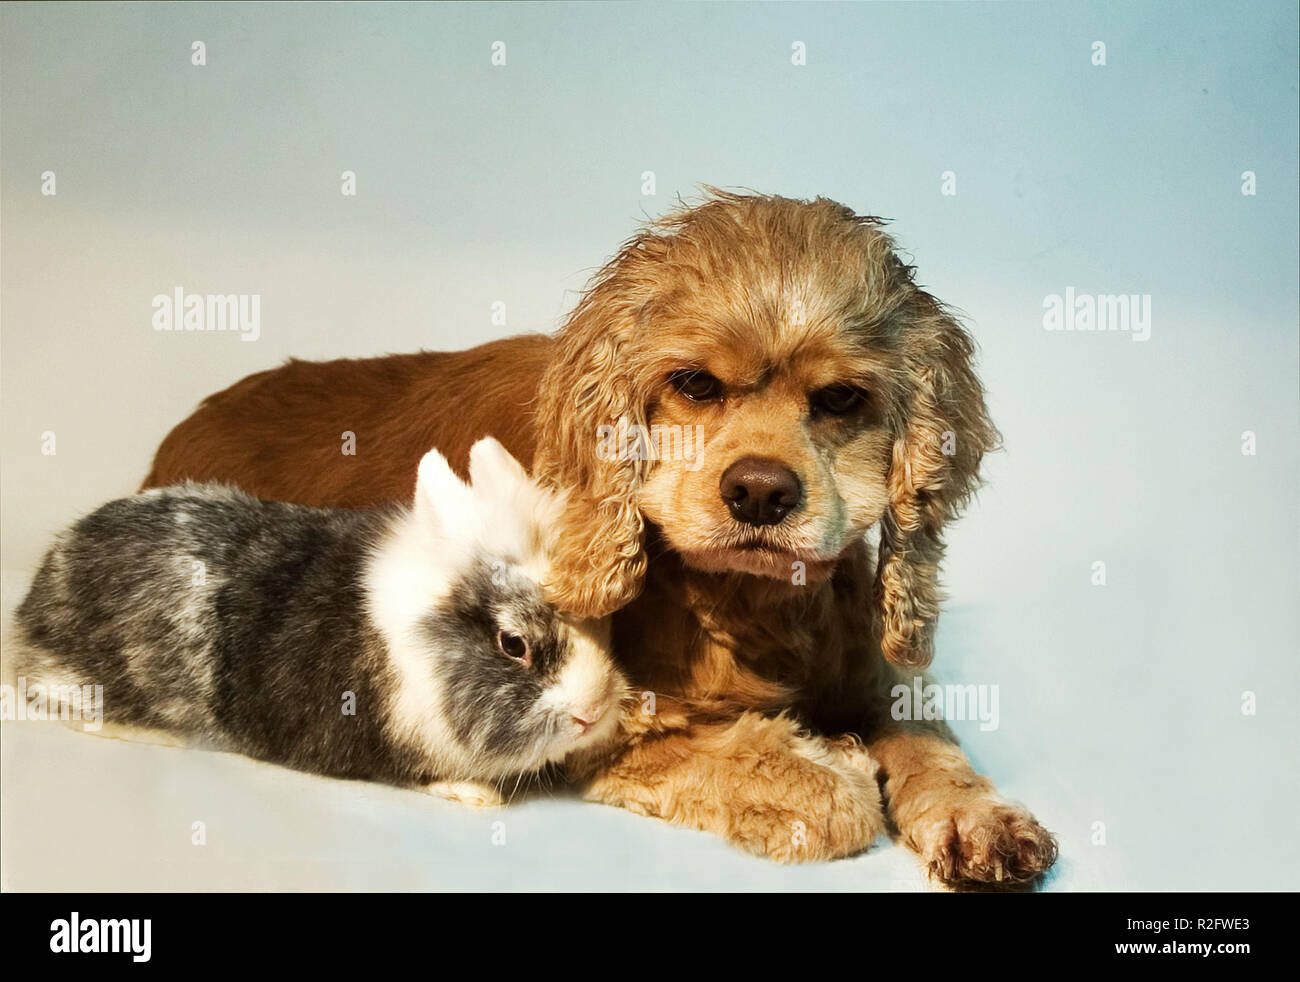 as dog and rabbit ... - Stock Image